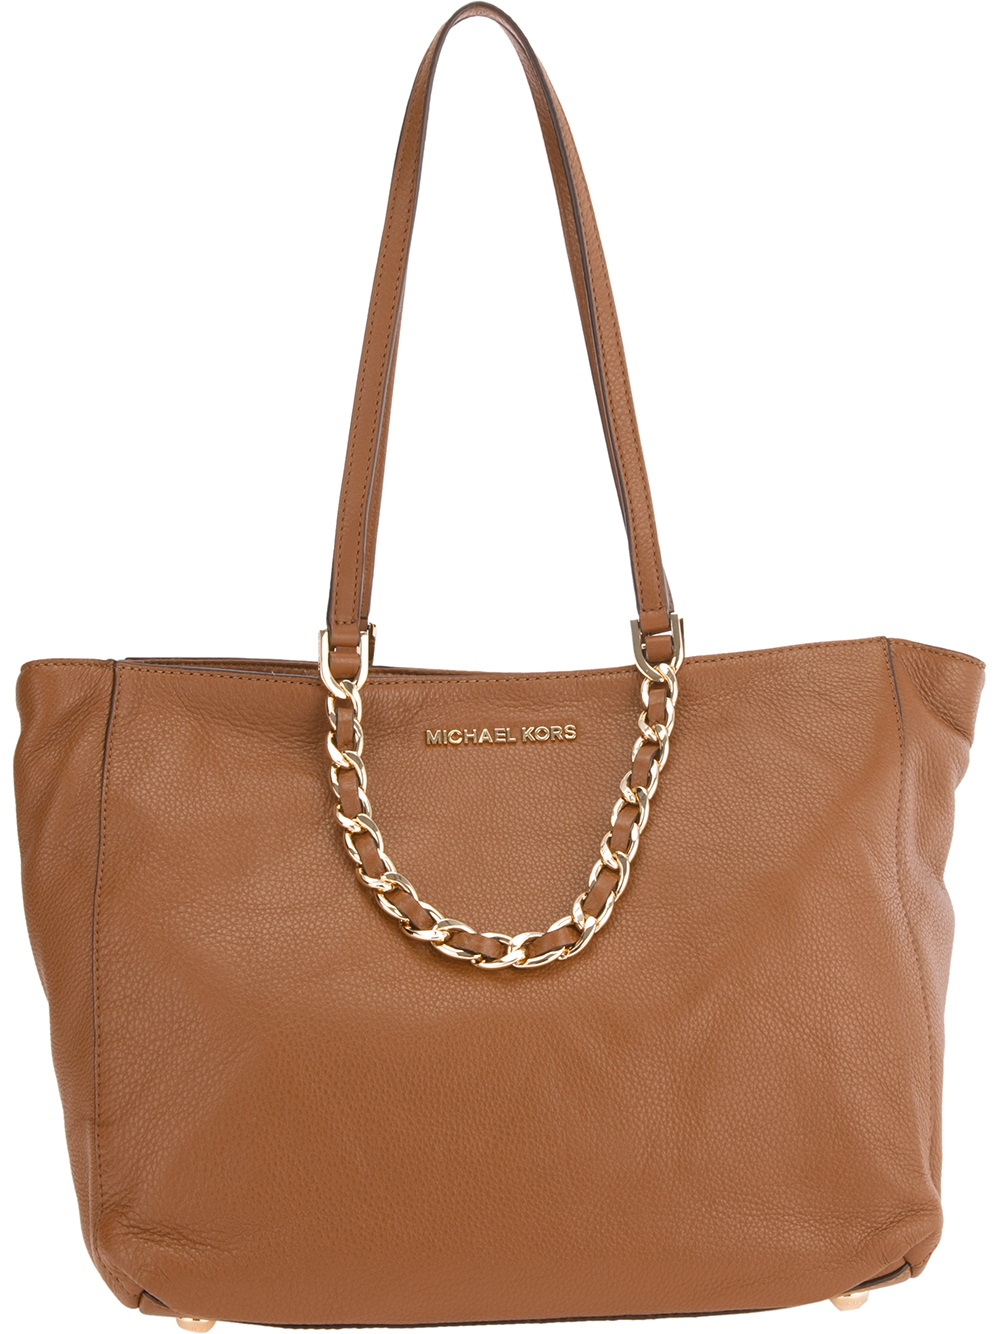 michael michael kors harper shopper tote in brown lyst. Black Bedroom Furniture Sets. Home Design Ideas